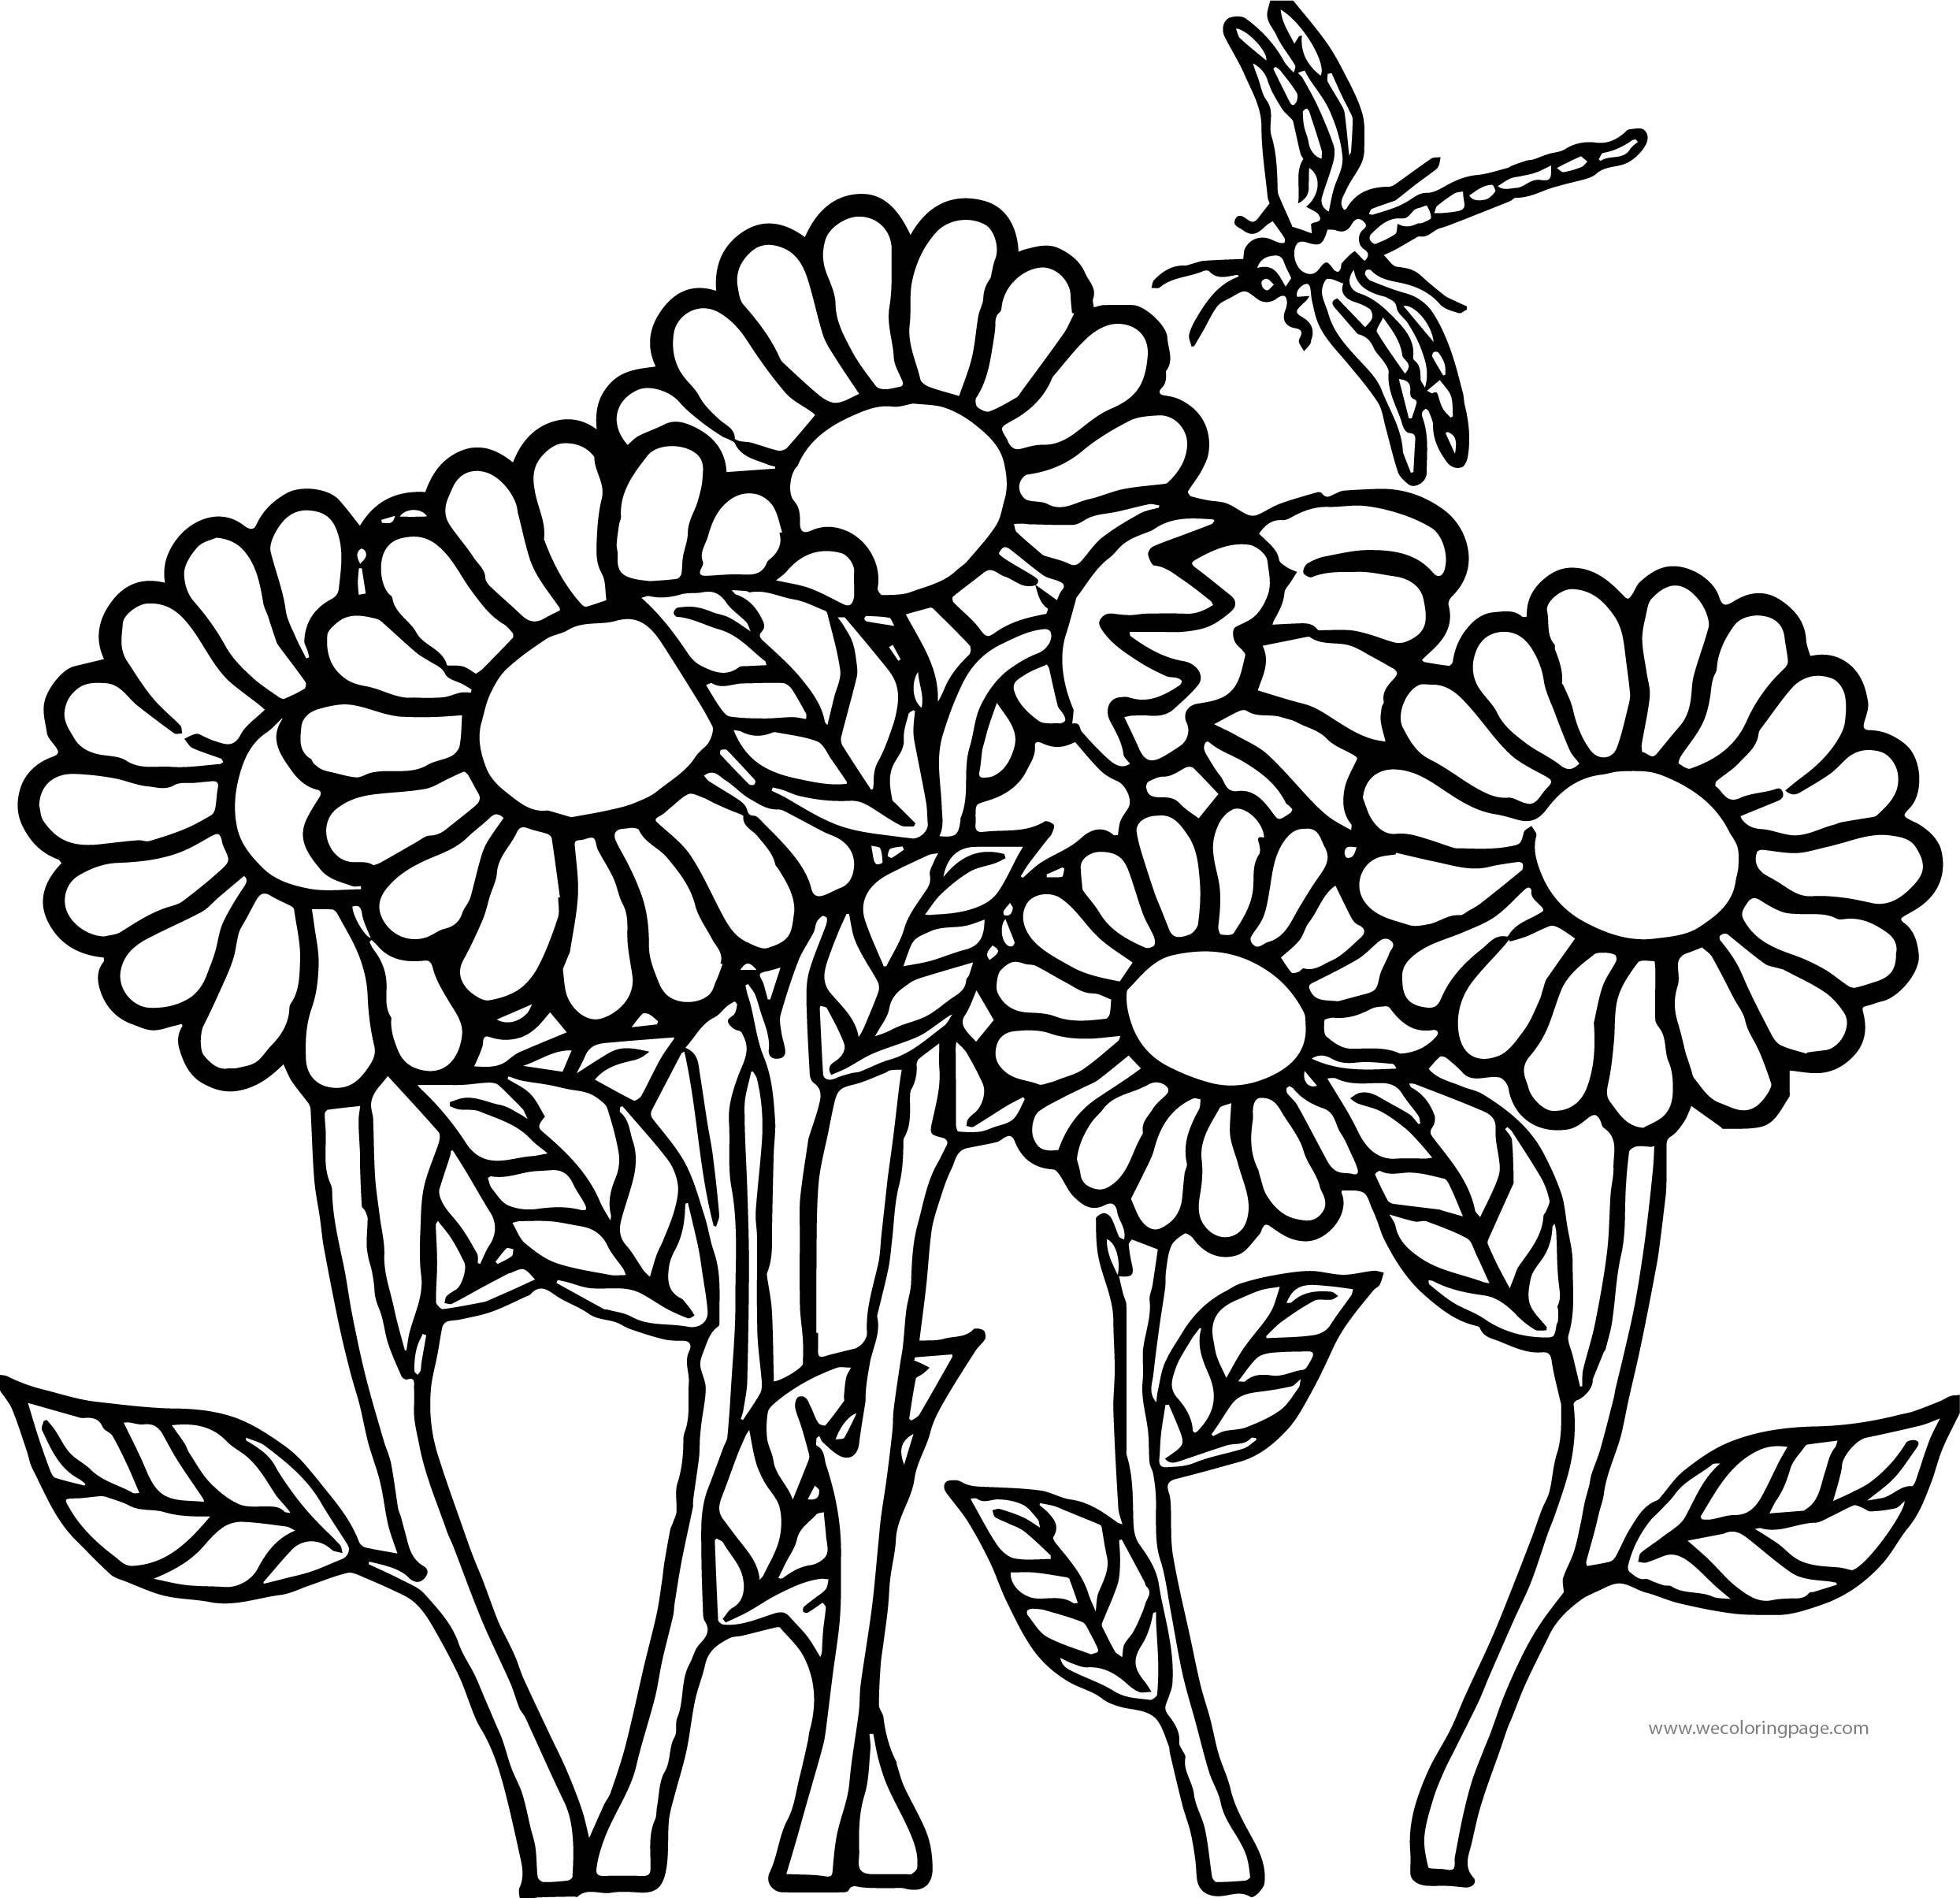 Flower Dragonfly Coloring Page | Wecoloringpage.com